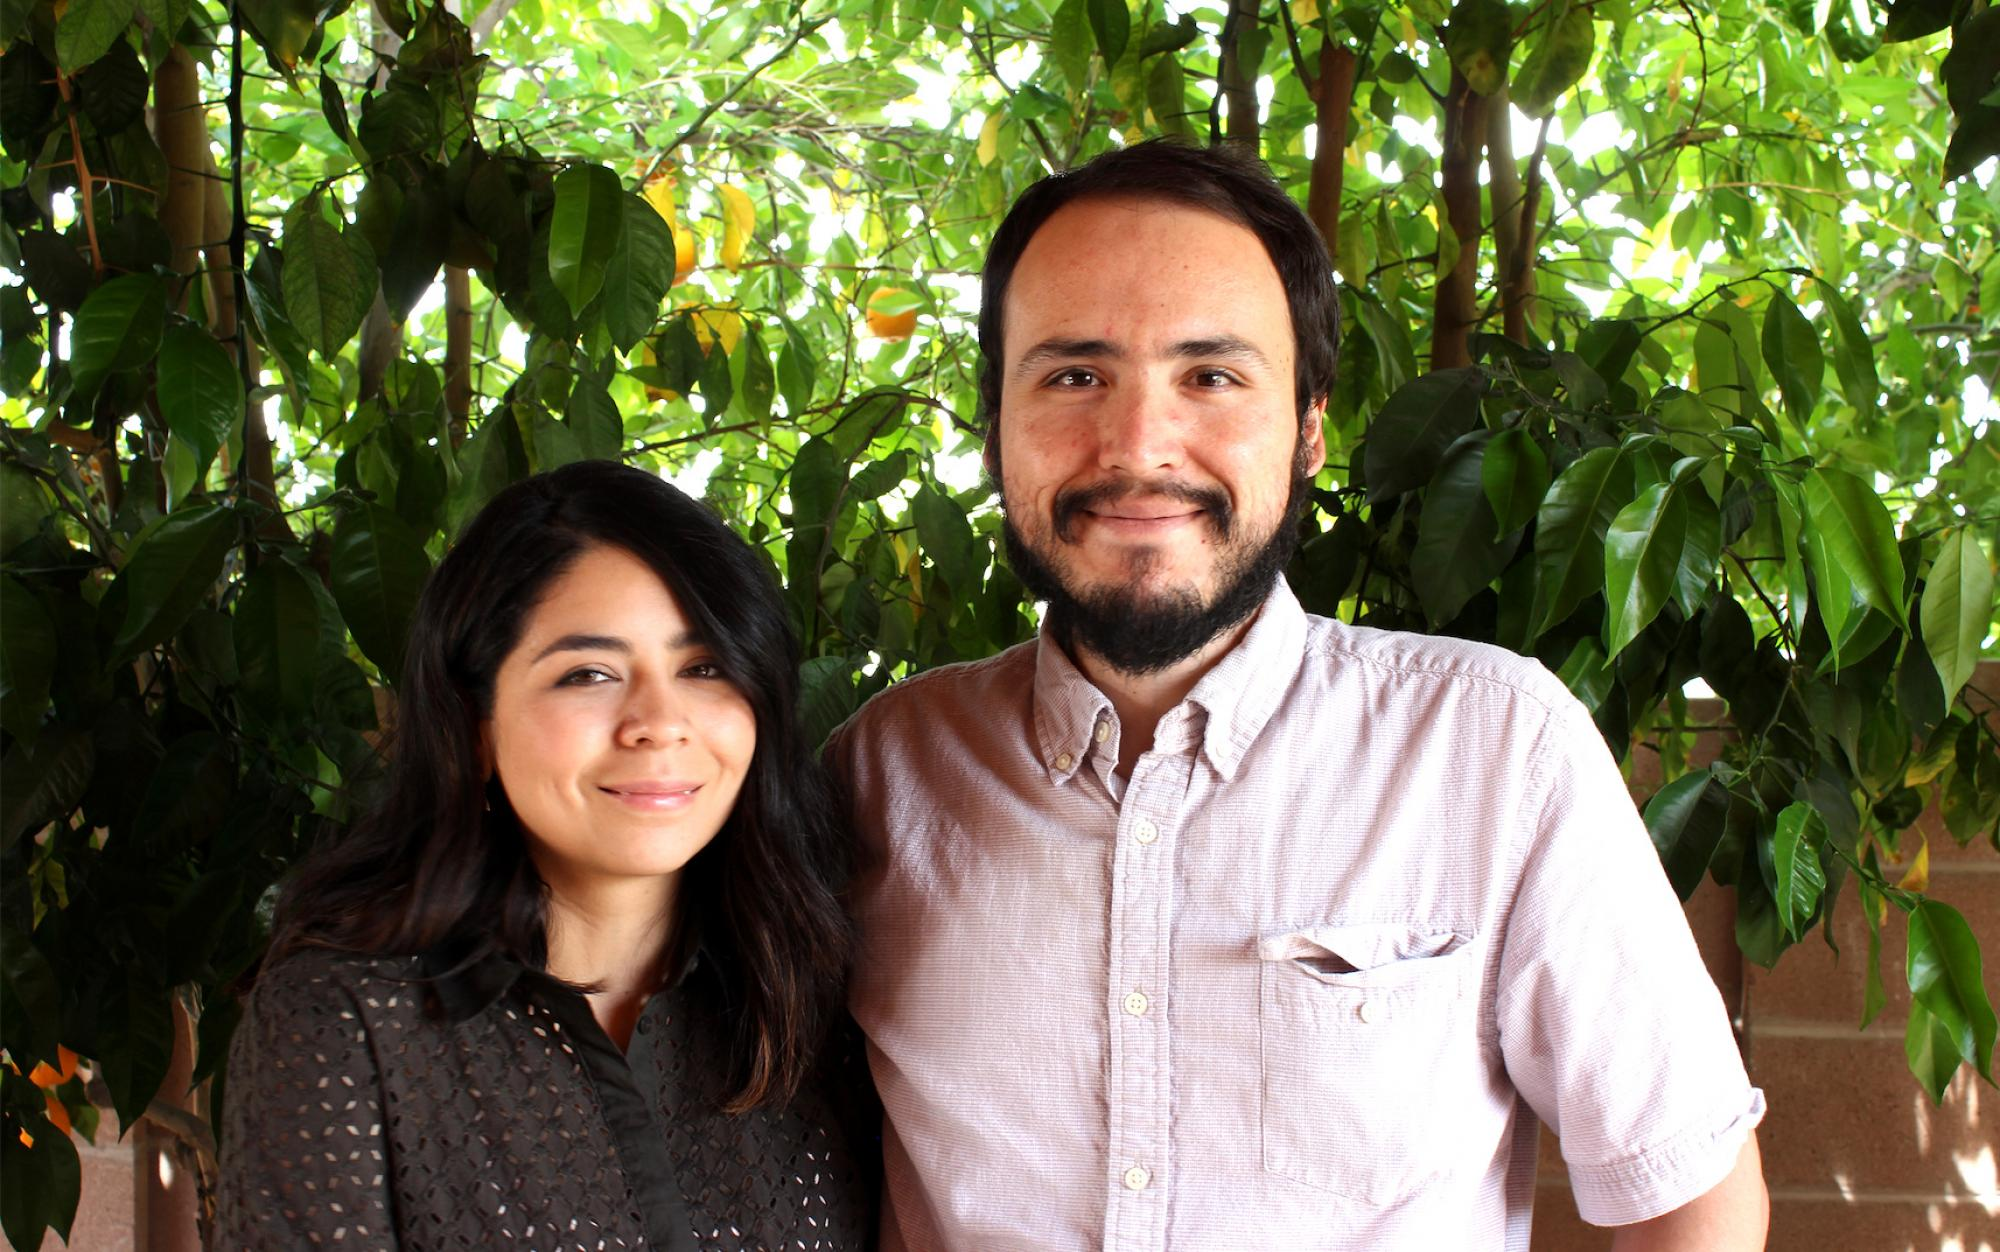 Michelle Aguilera and Christian Ruvalcaba are collaborators on the Language Capital Project, which provides a way for non-national language speakers to locate areas where fellow speakers gather so that they can form bonds.